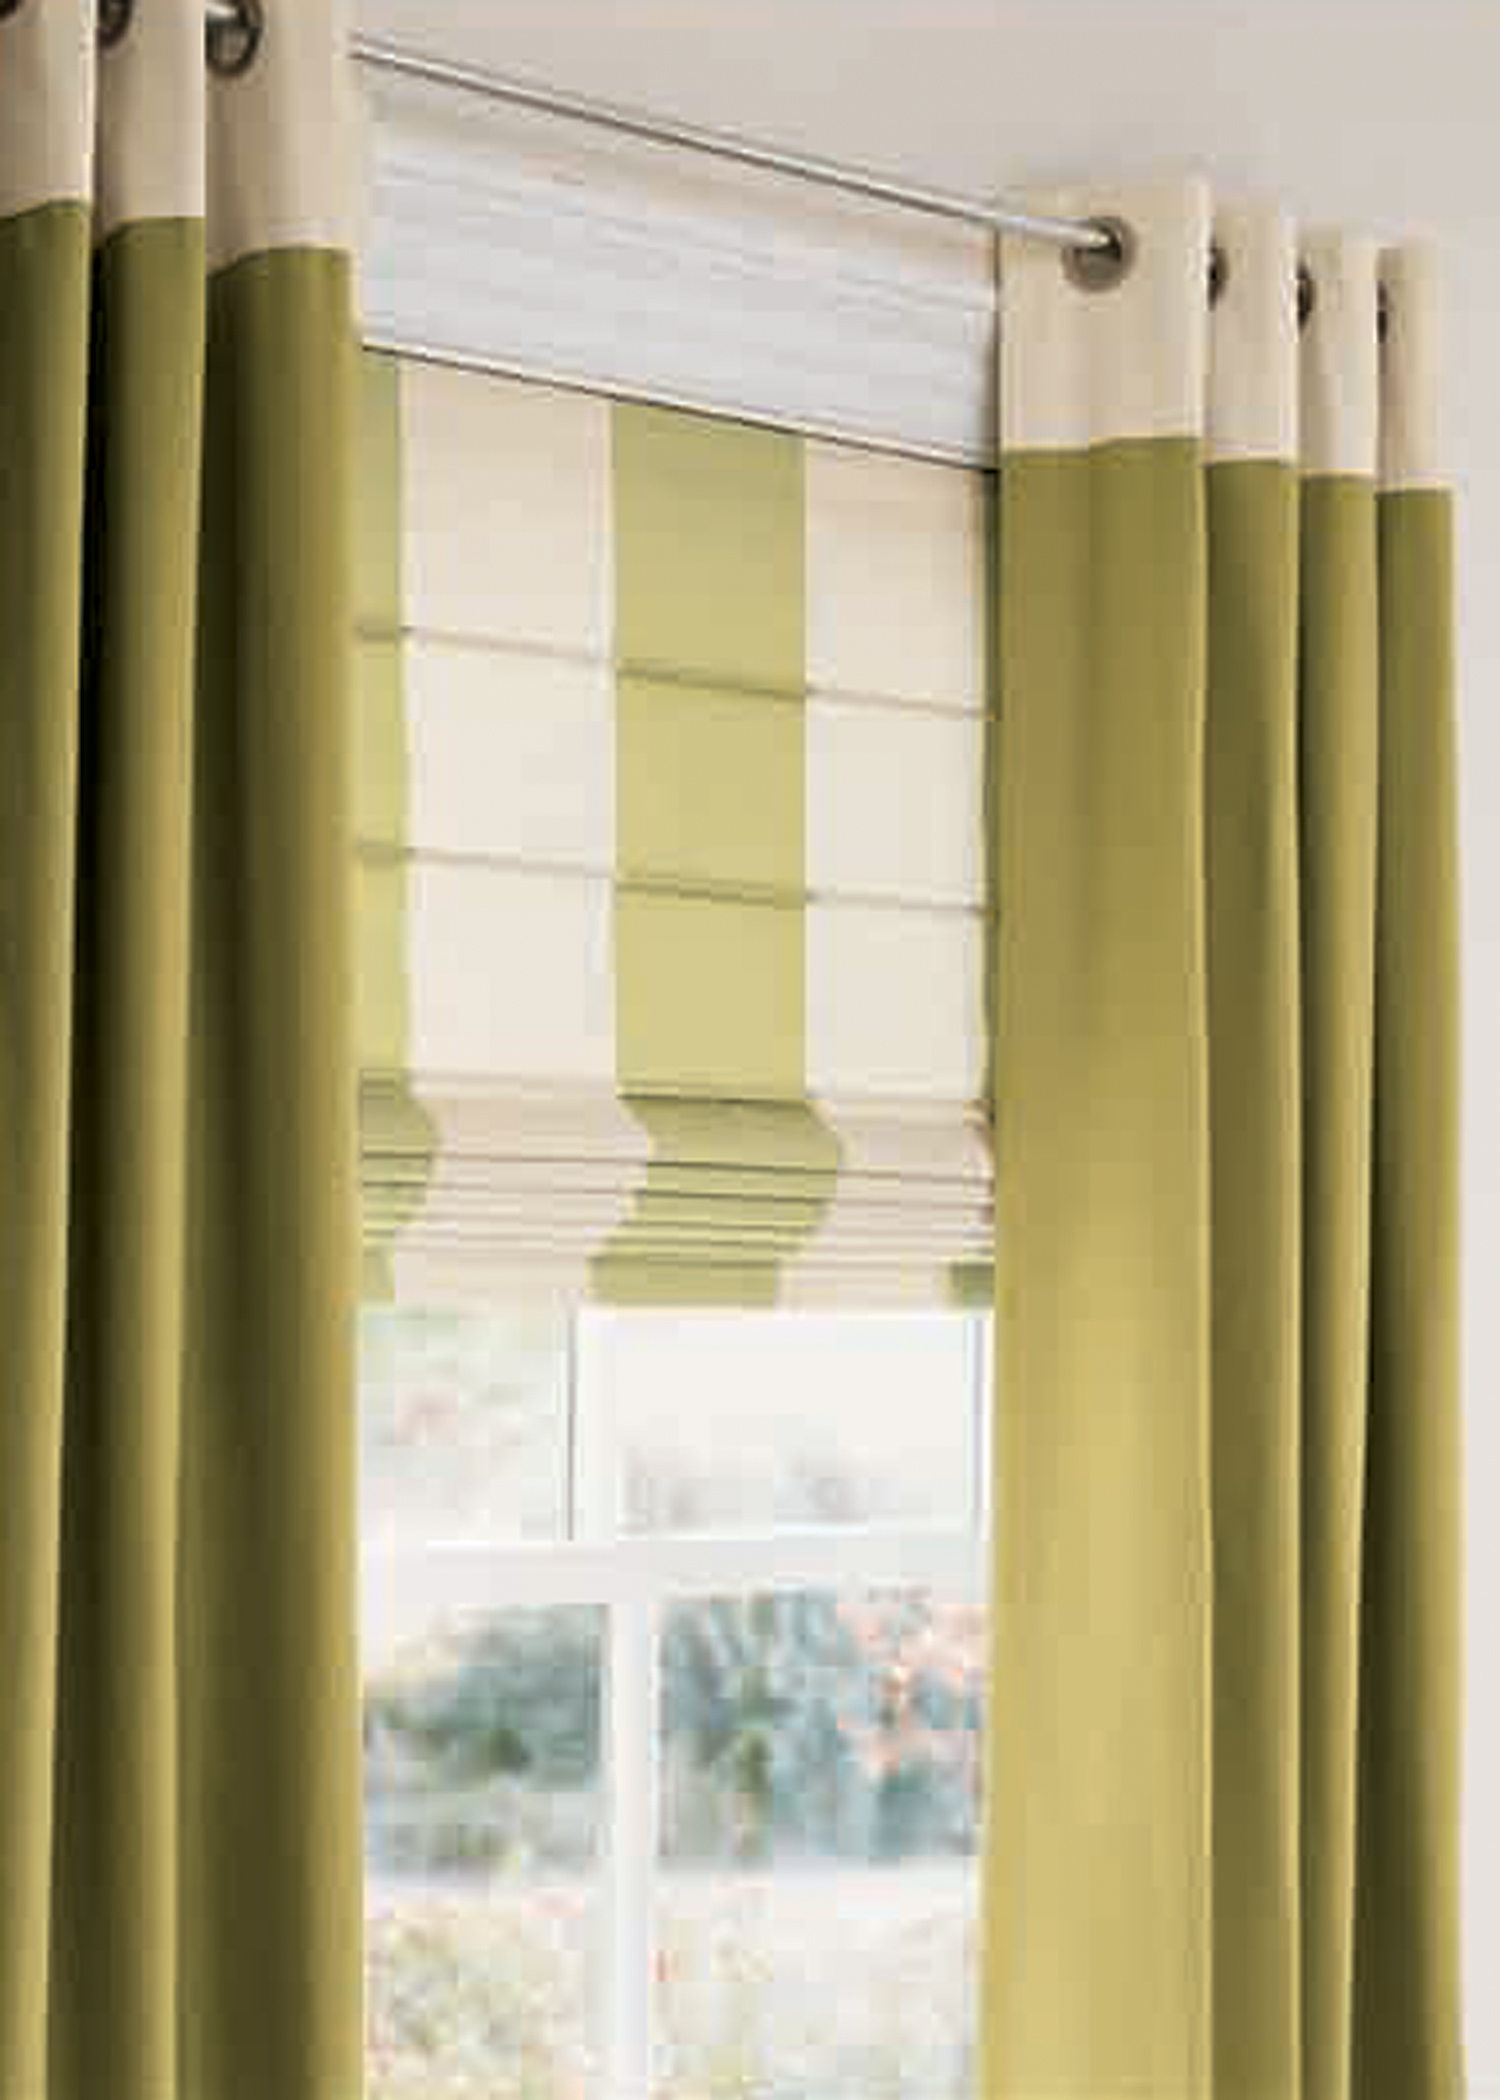 modern window valance valance red shade modern window treatments  - window valances with grom drape and striped white and lime shade forbeautiful home ideas